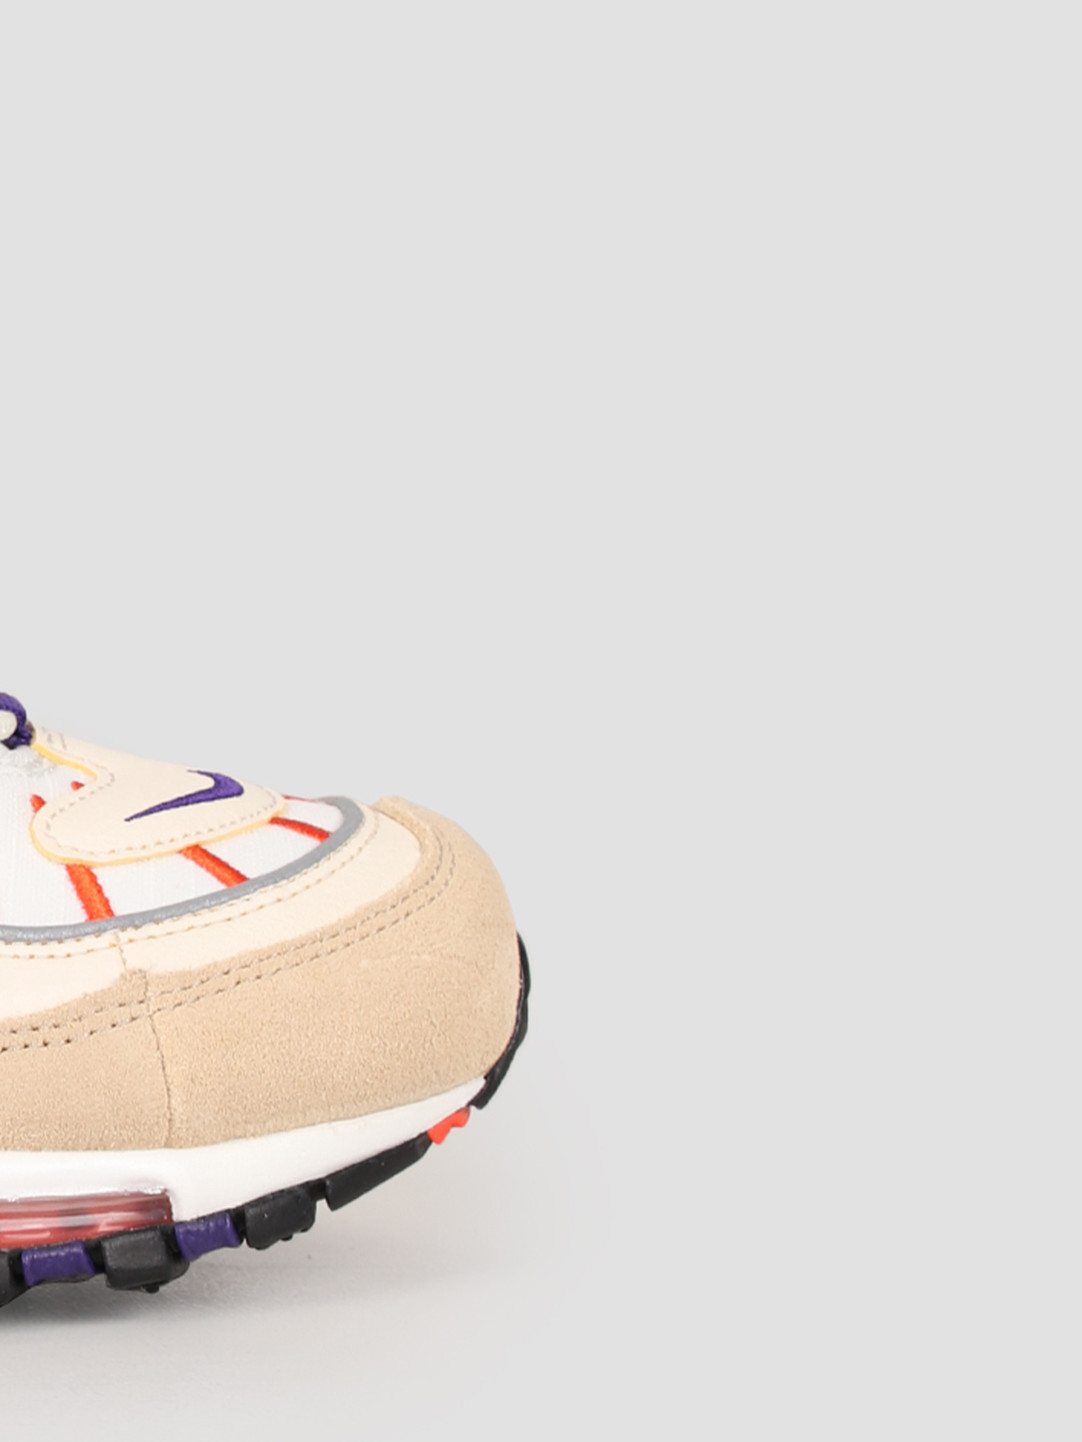 Nike Nike Air Max 98 Sail Court Purple Light Cream Desert Ore 640744-108